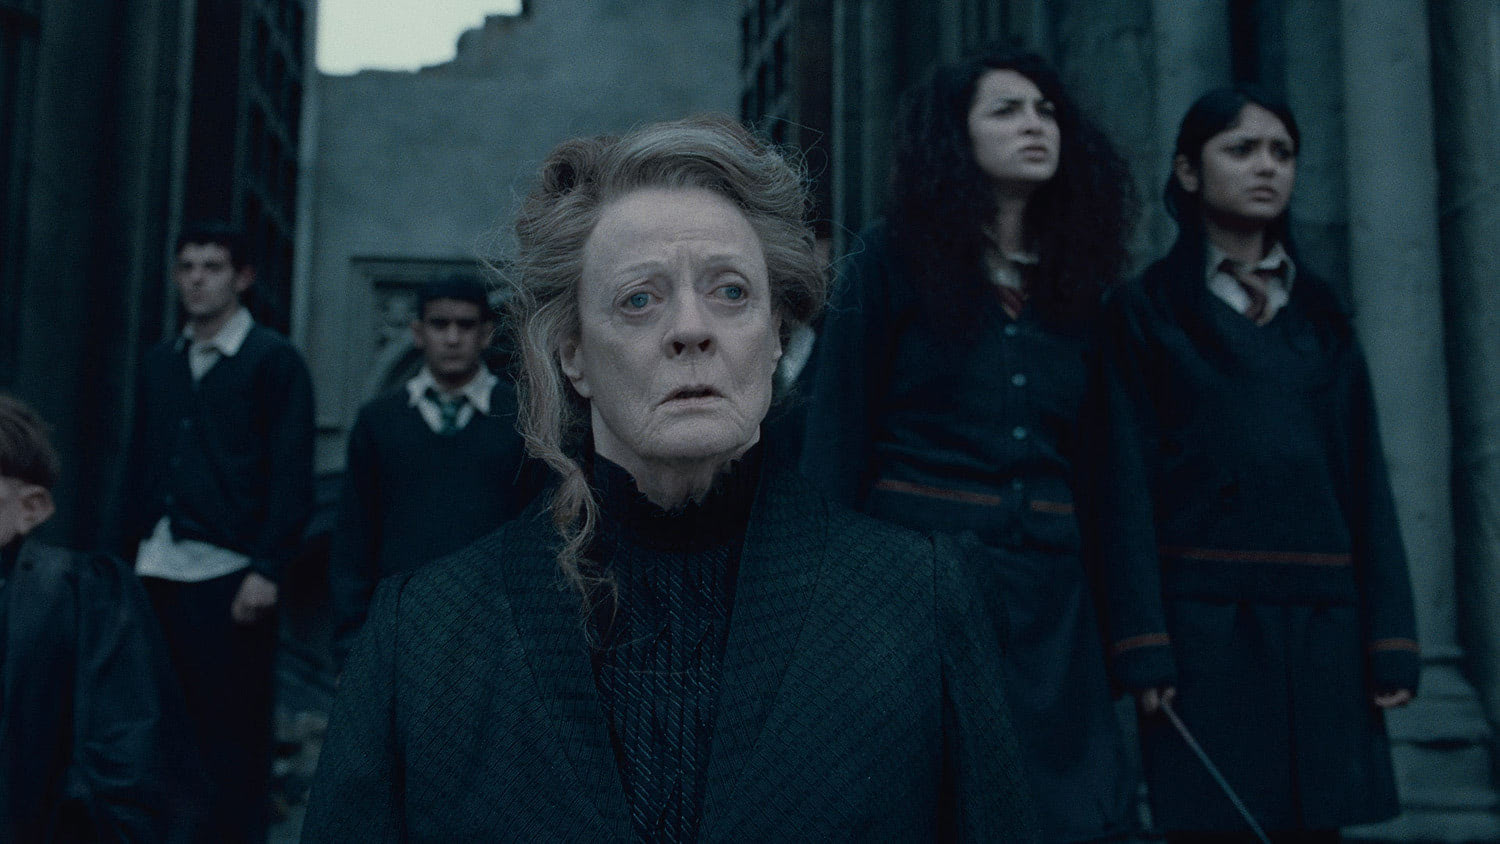 McGonagall looks worried